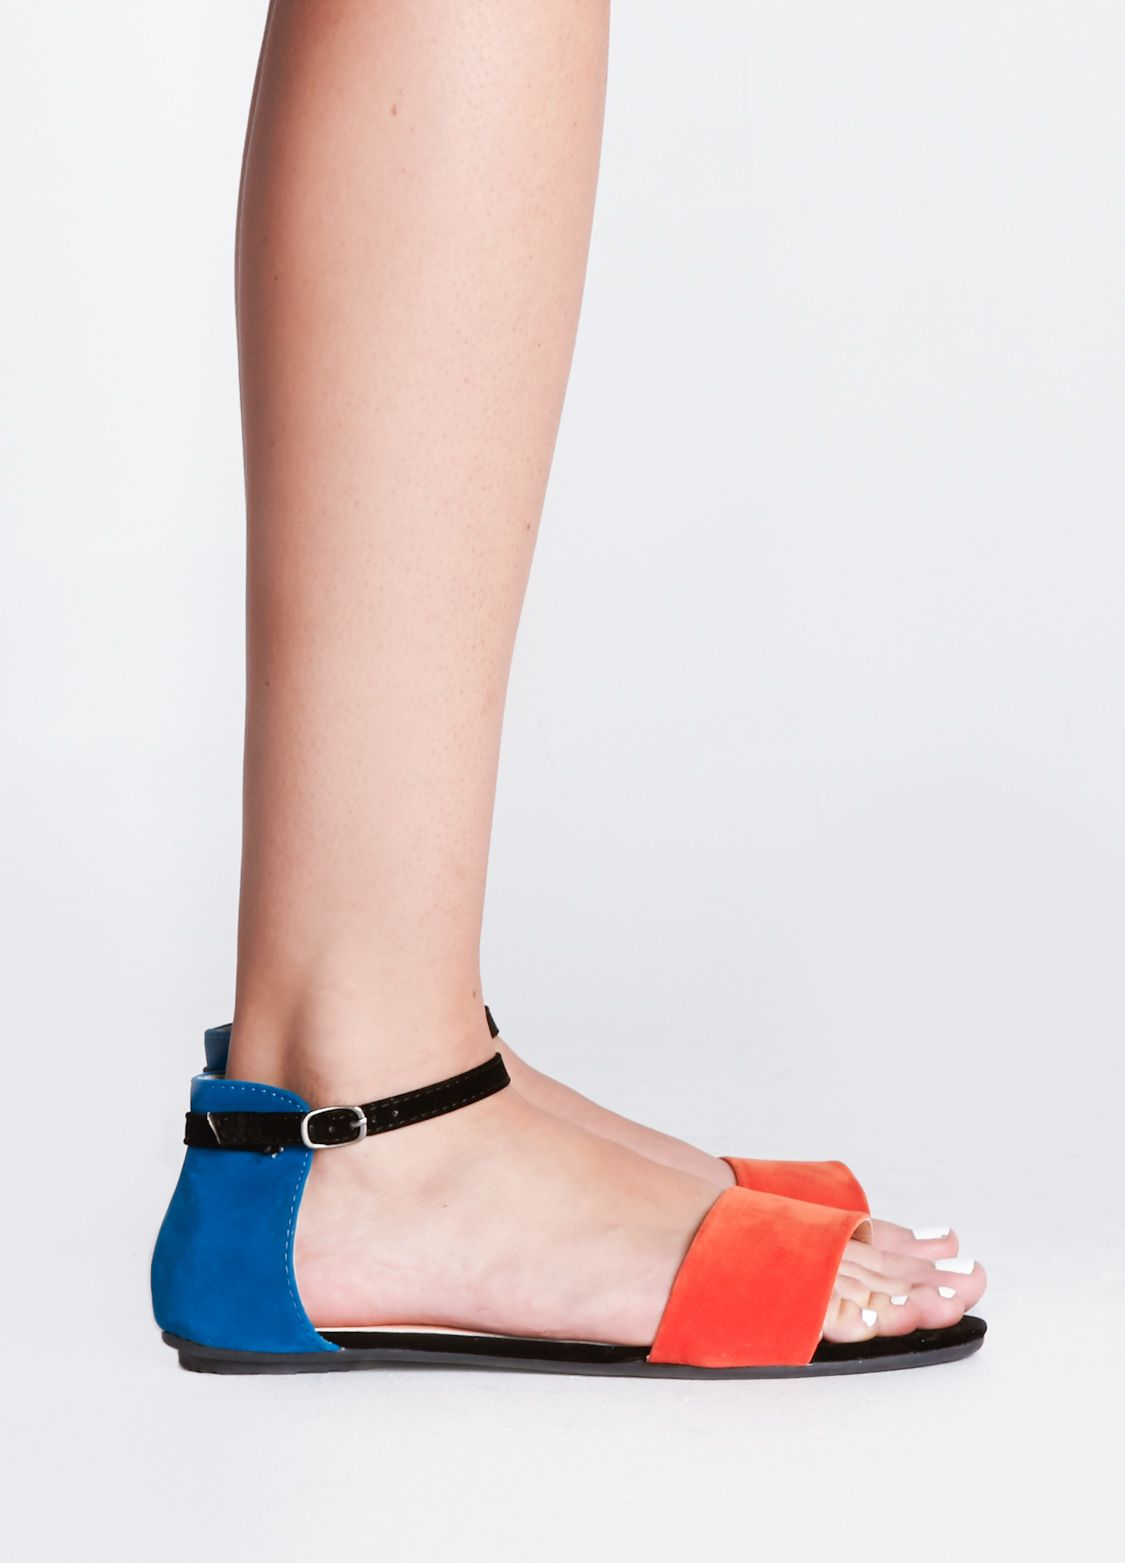 Black faux suede flat sandal featuring orange and blue contrast details. Ankle strap with buckle closure.